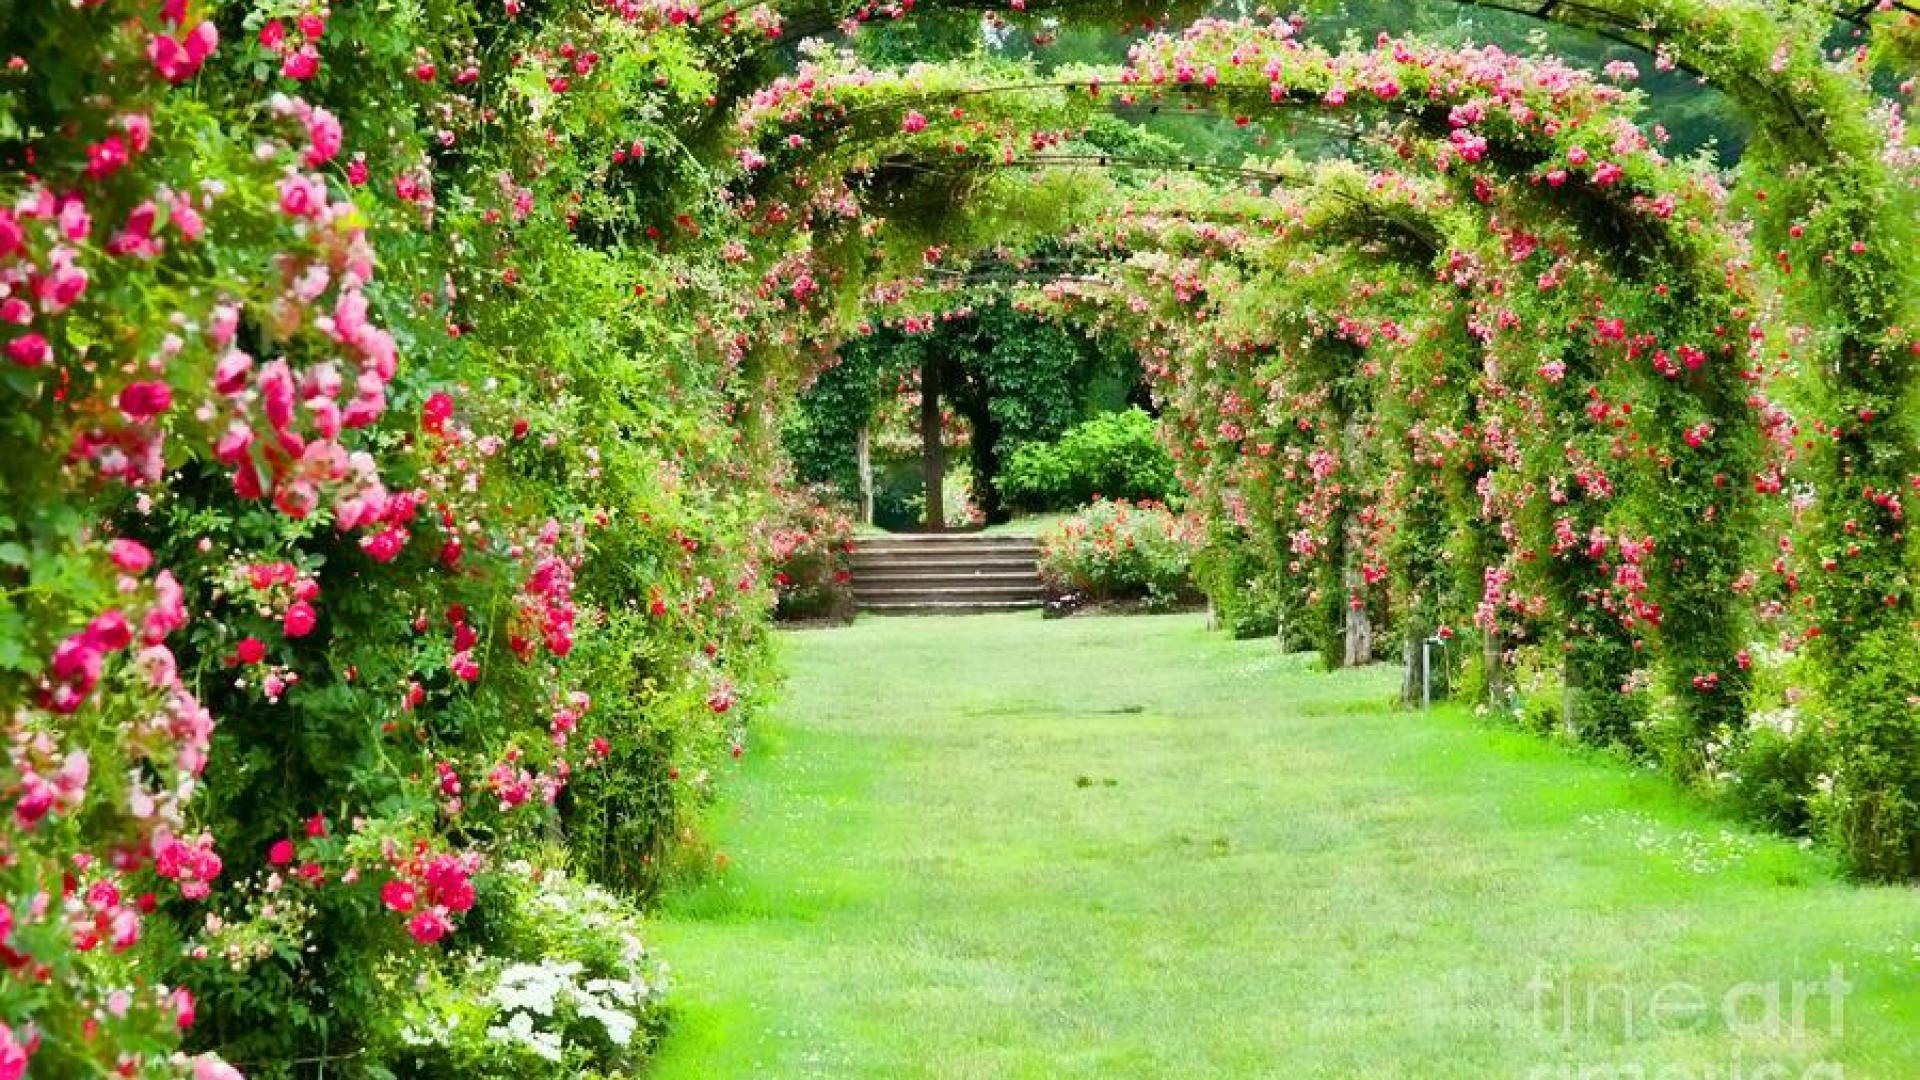 Hd wallpaper garden - Rose Garden Wallpaper 56142 Hd Wallpapers Wallpapersinhq Pw